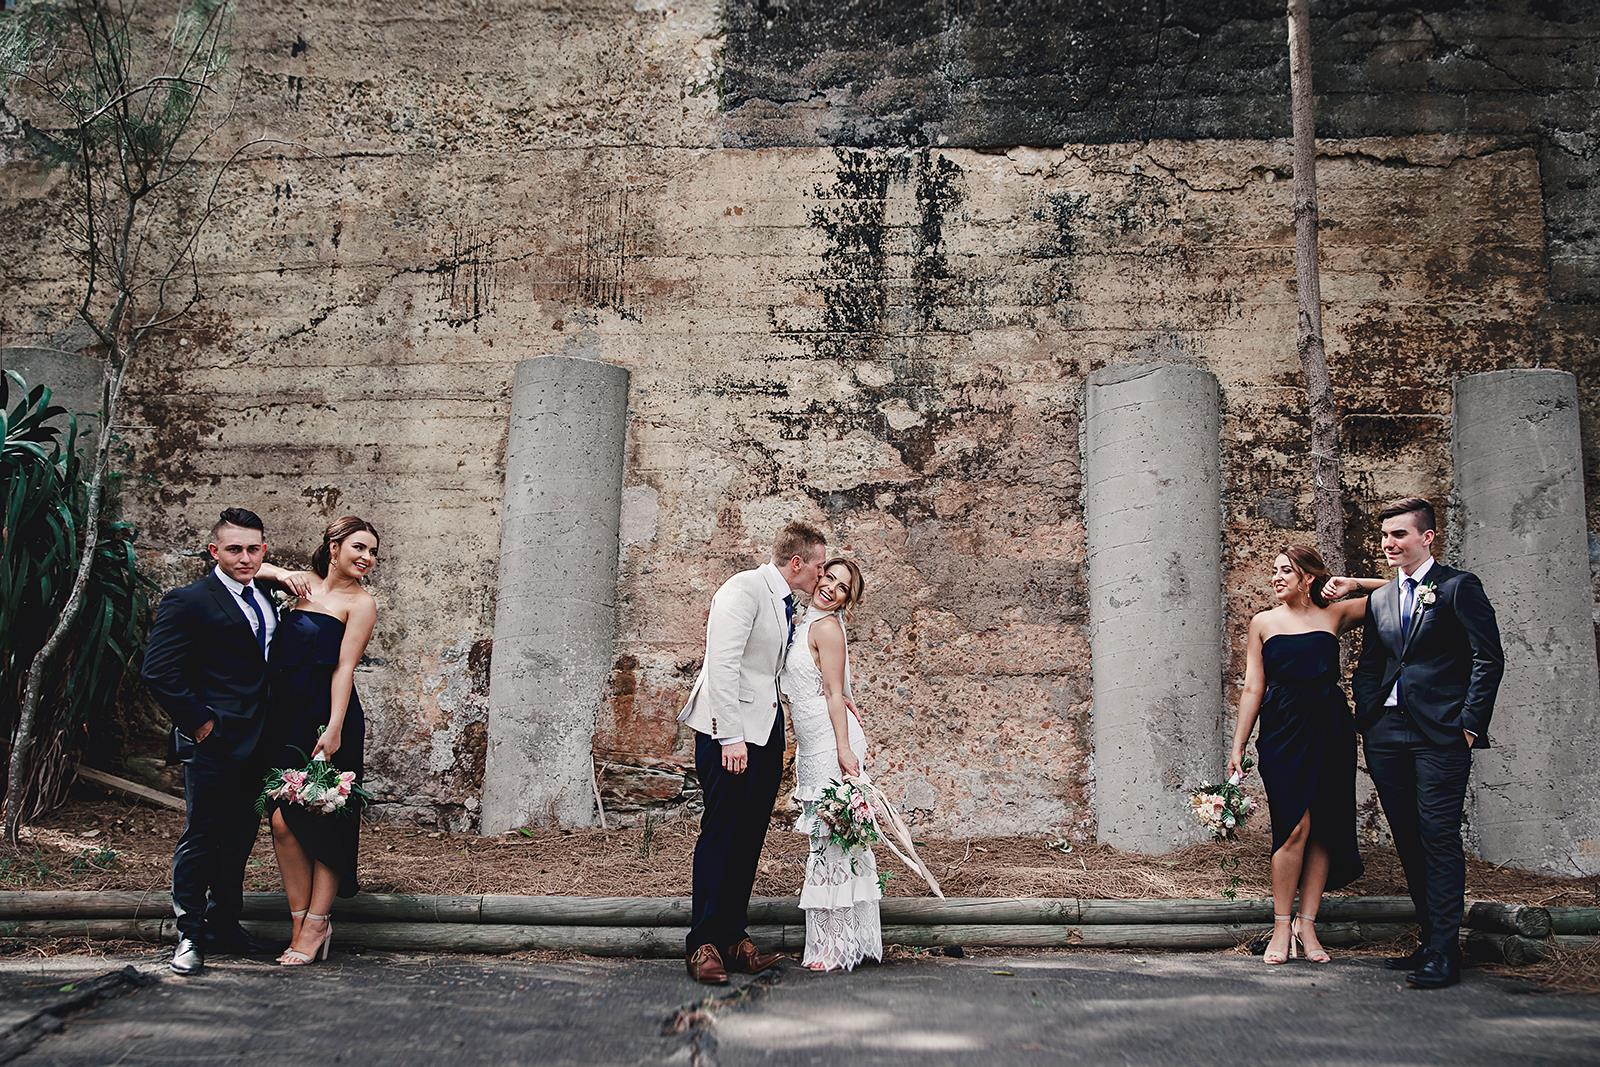 Bridal Party Photos Wedding Day Little Manly Point.jpg